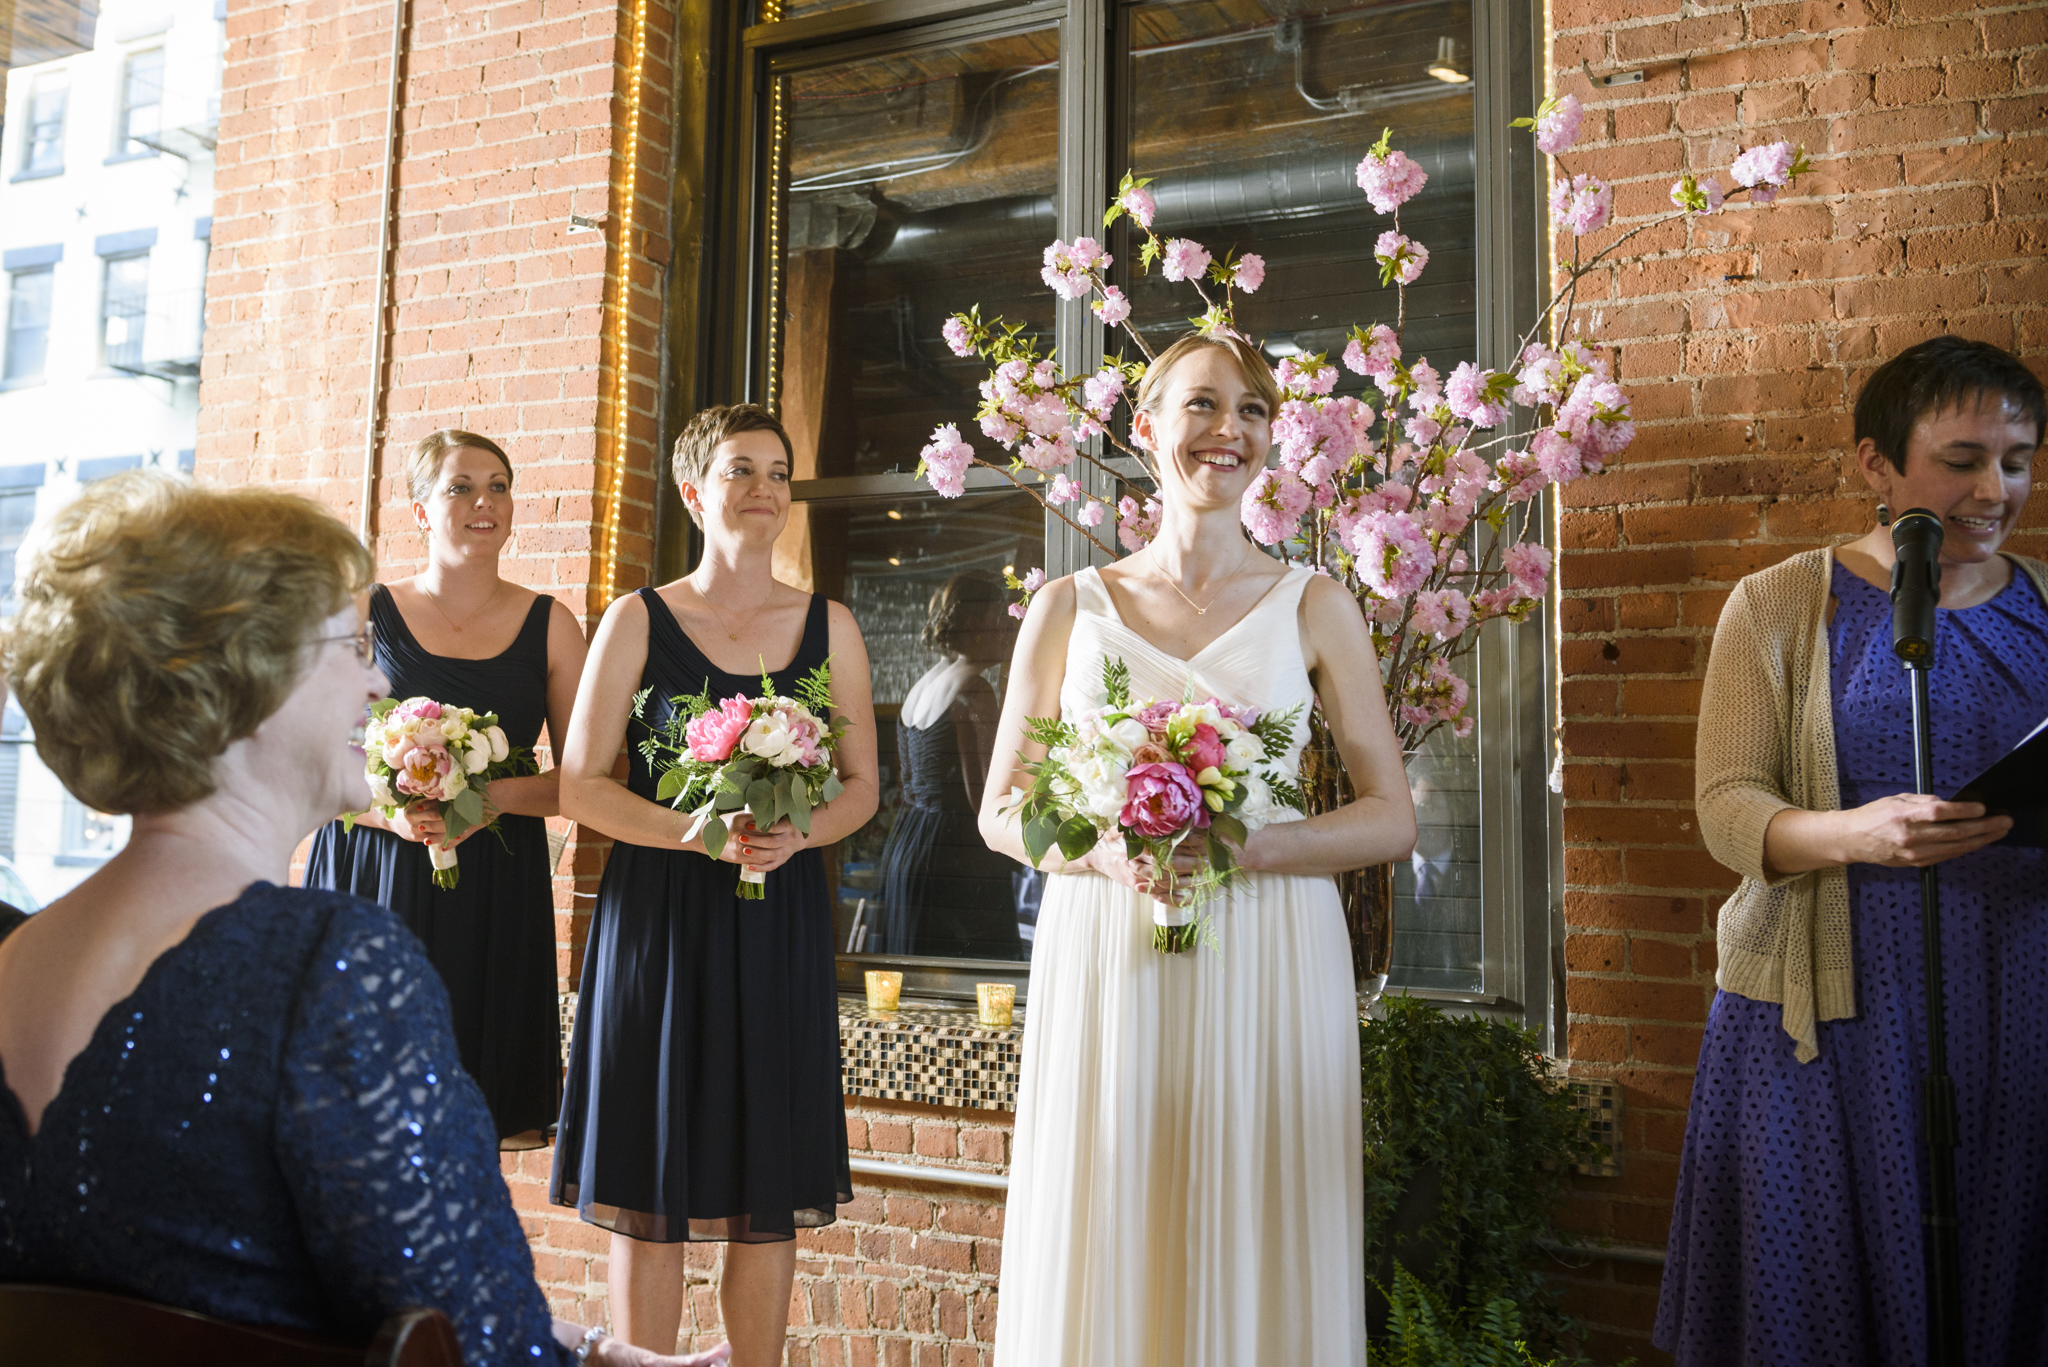 Rebekah&Halvar_Wedding by Romina Hendlin_006.jpg